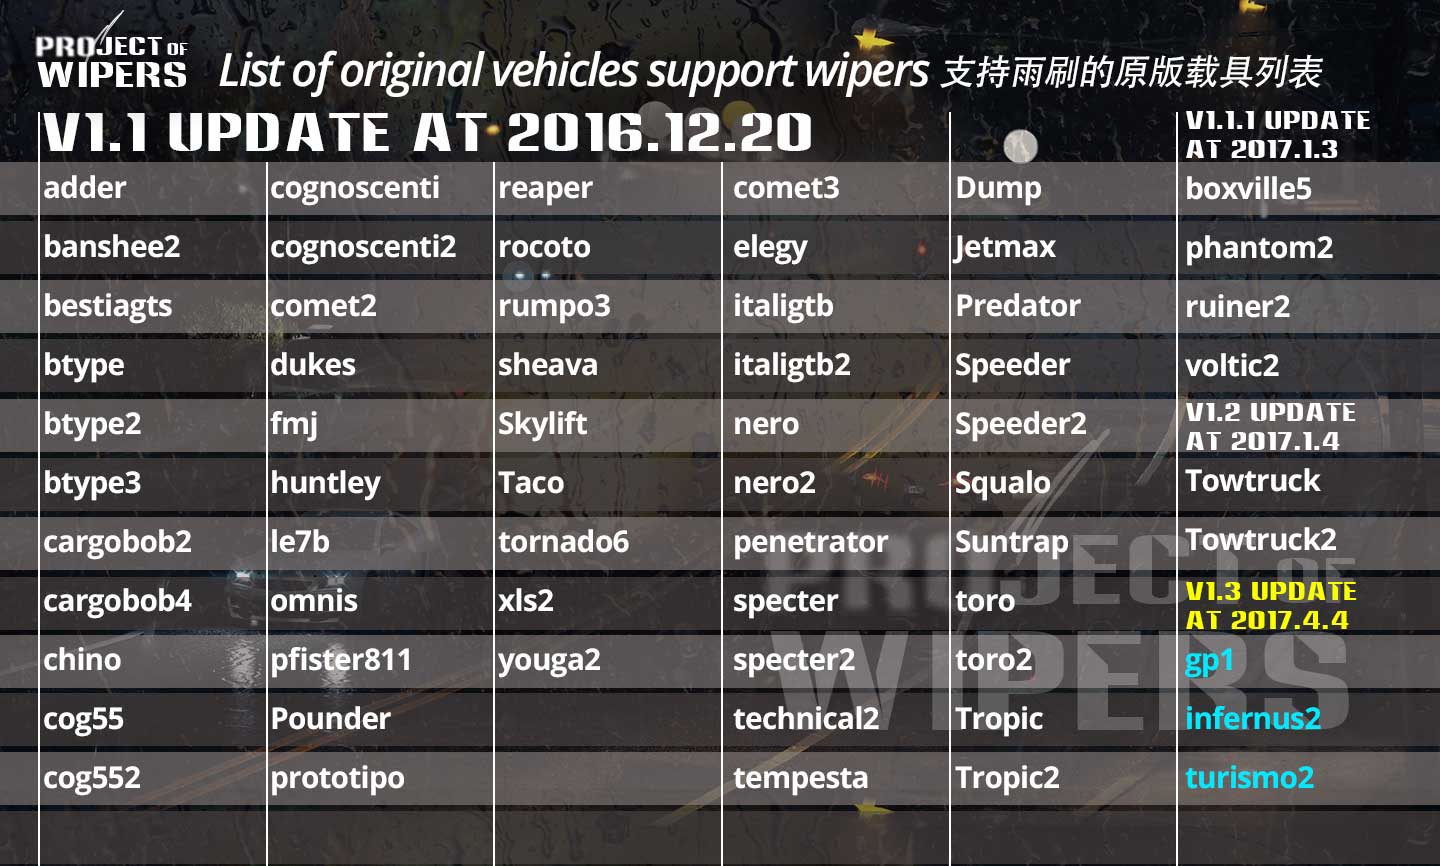 cars vehicles mods list gta5 wipers project update replace updated expand